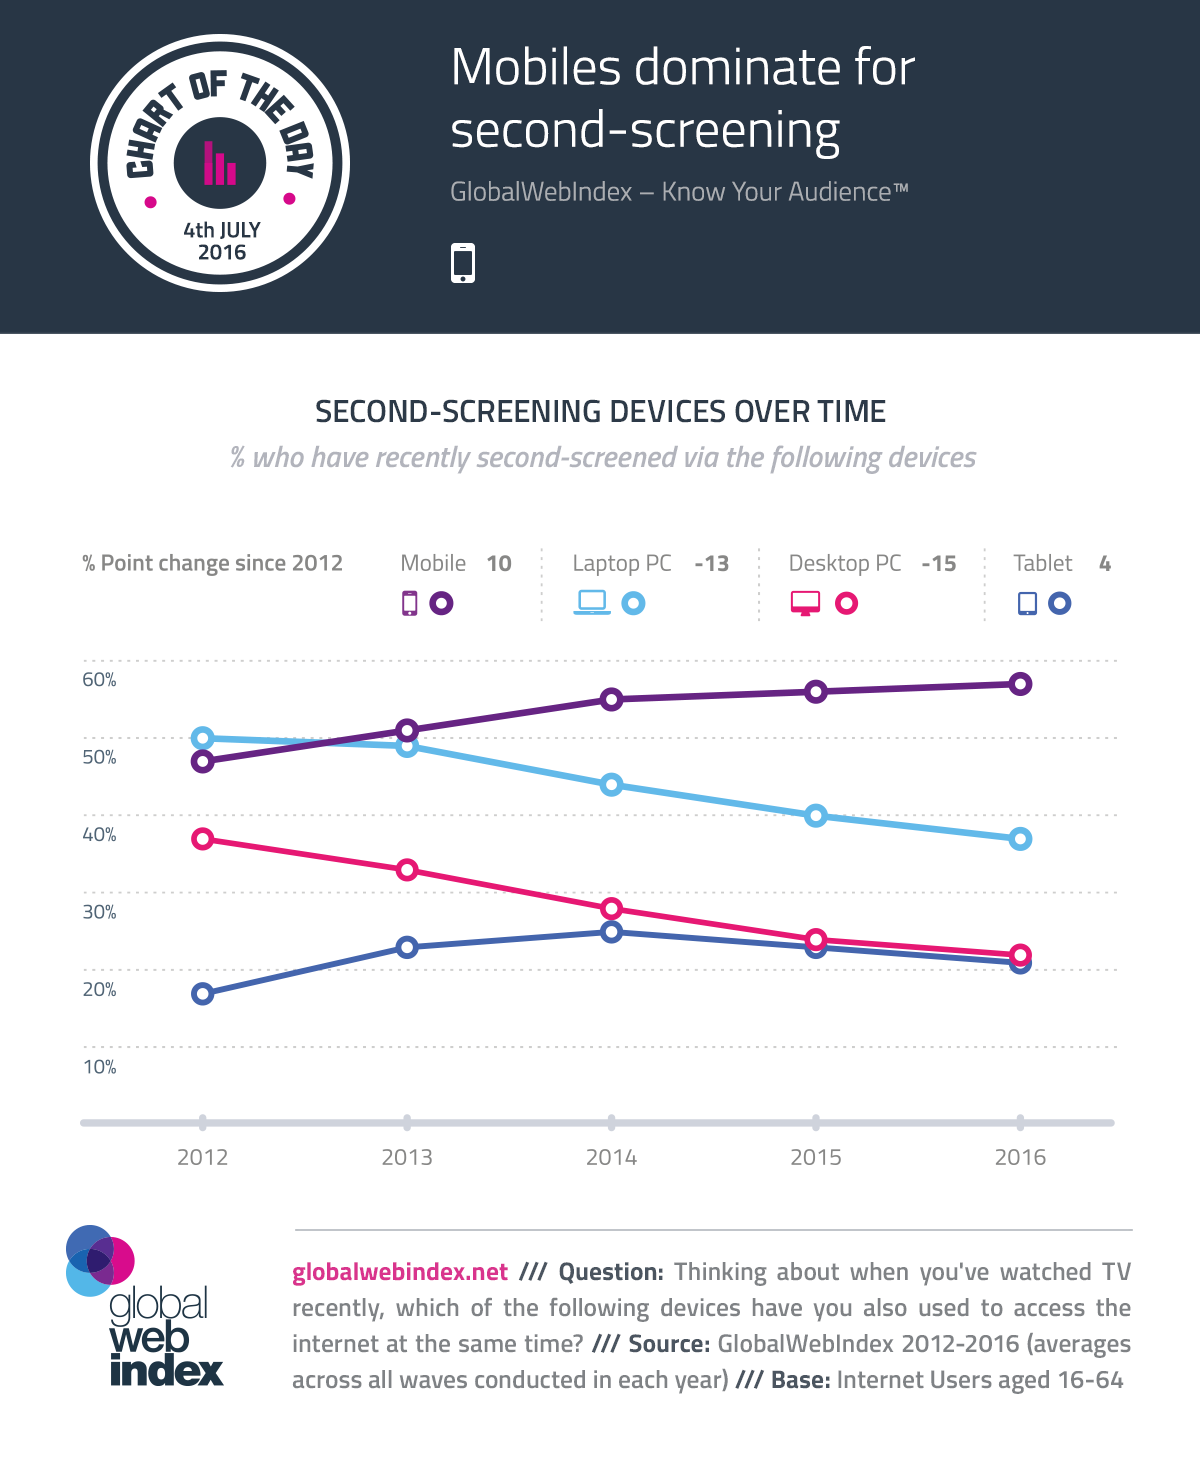 Mobiles dominate for second-screening